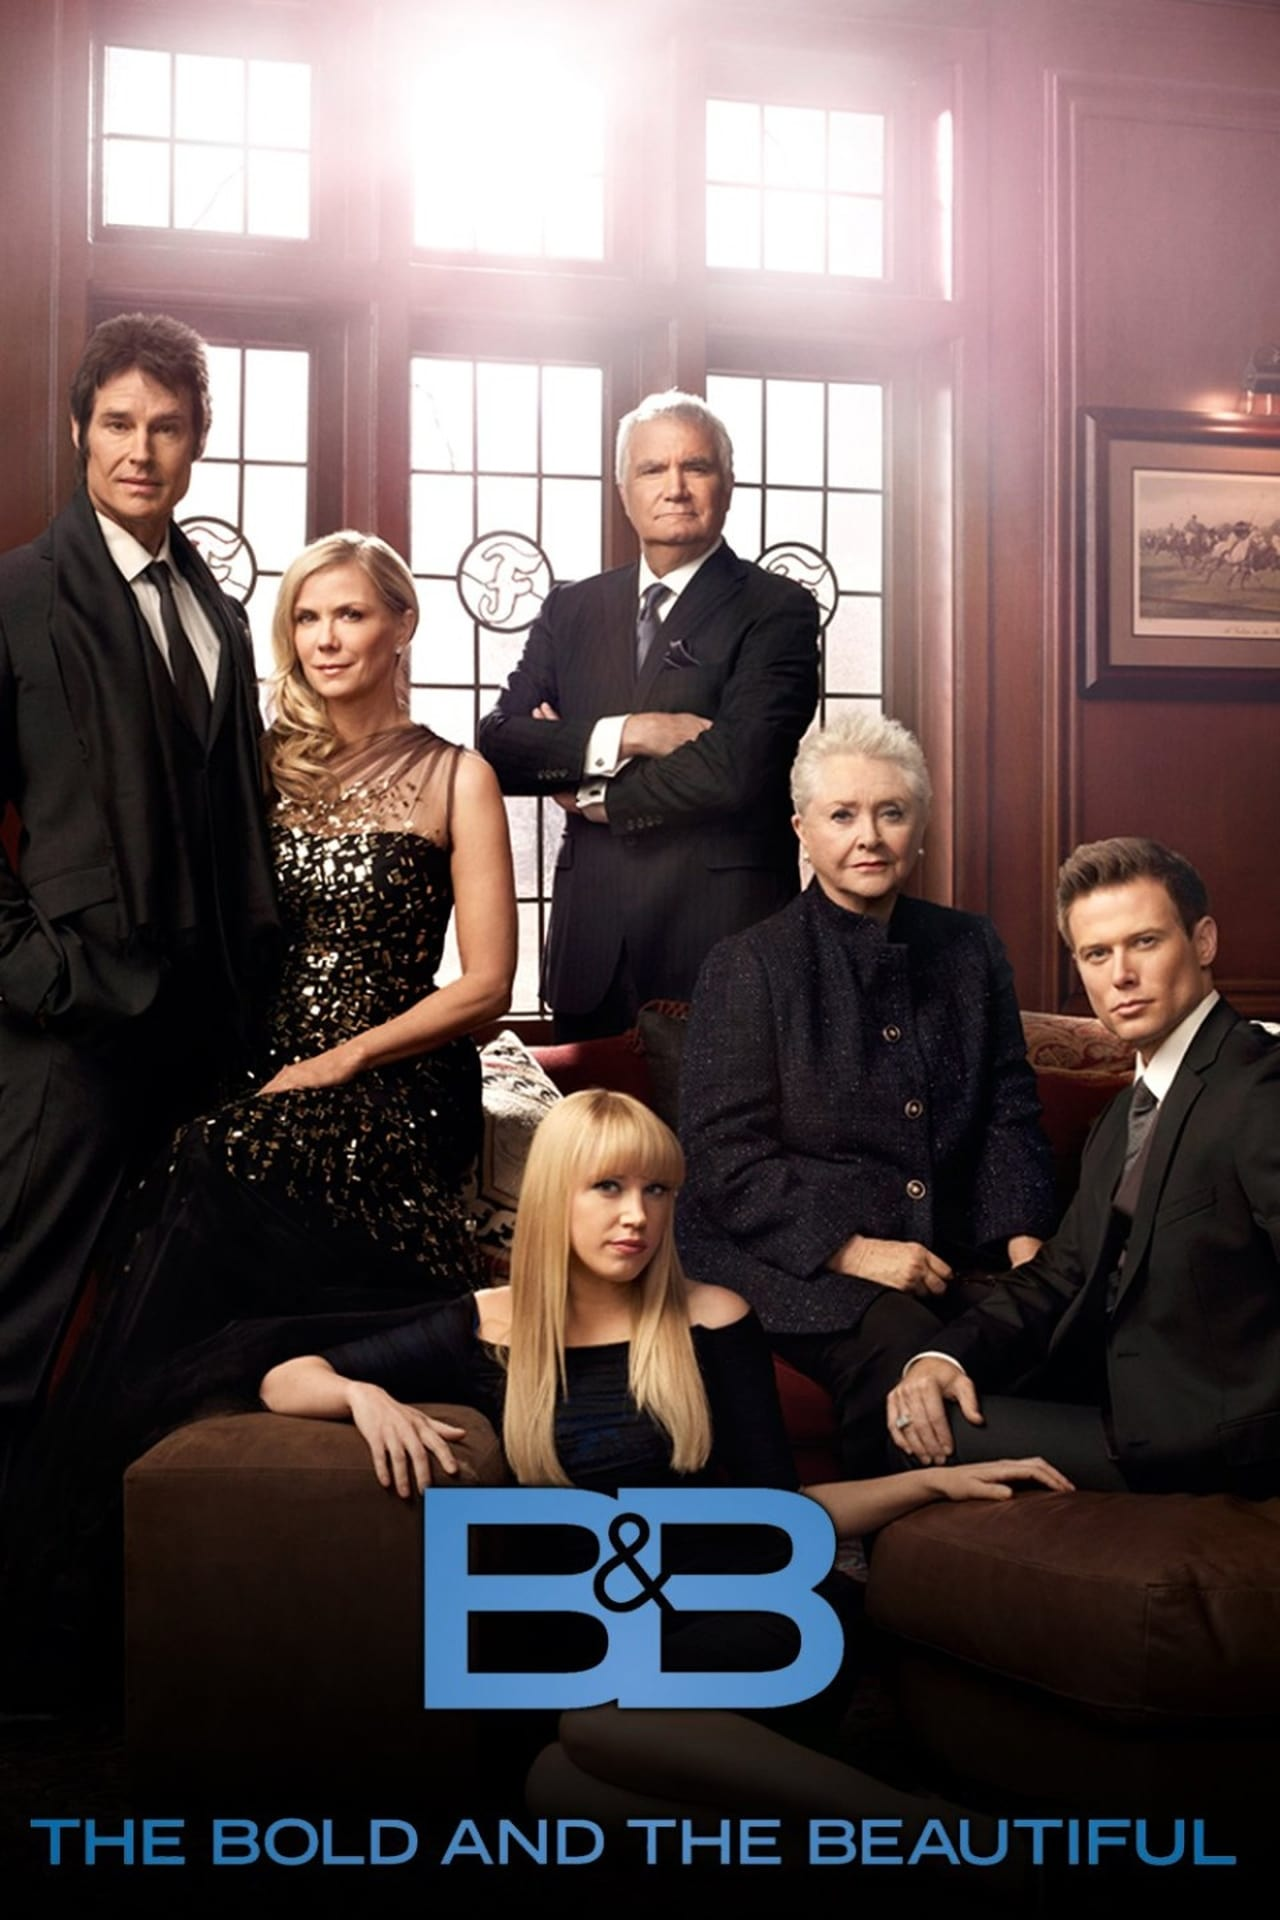 The Bold And The Beautiful Season 1